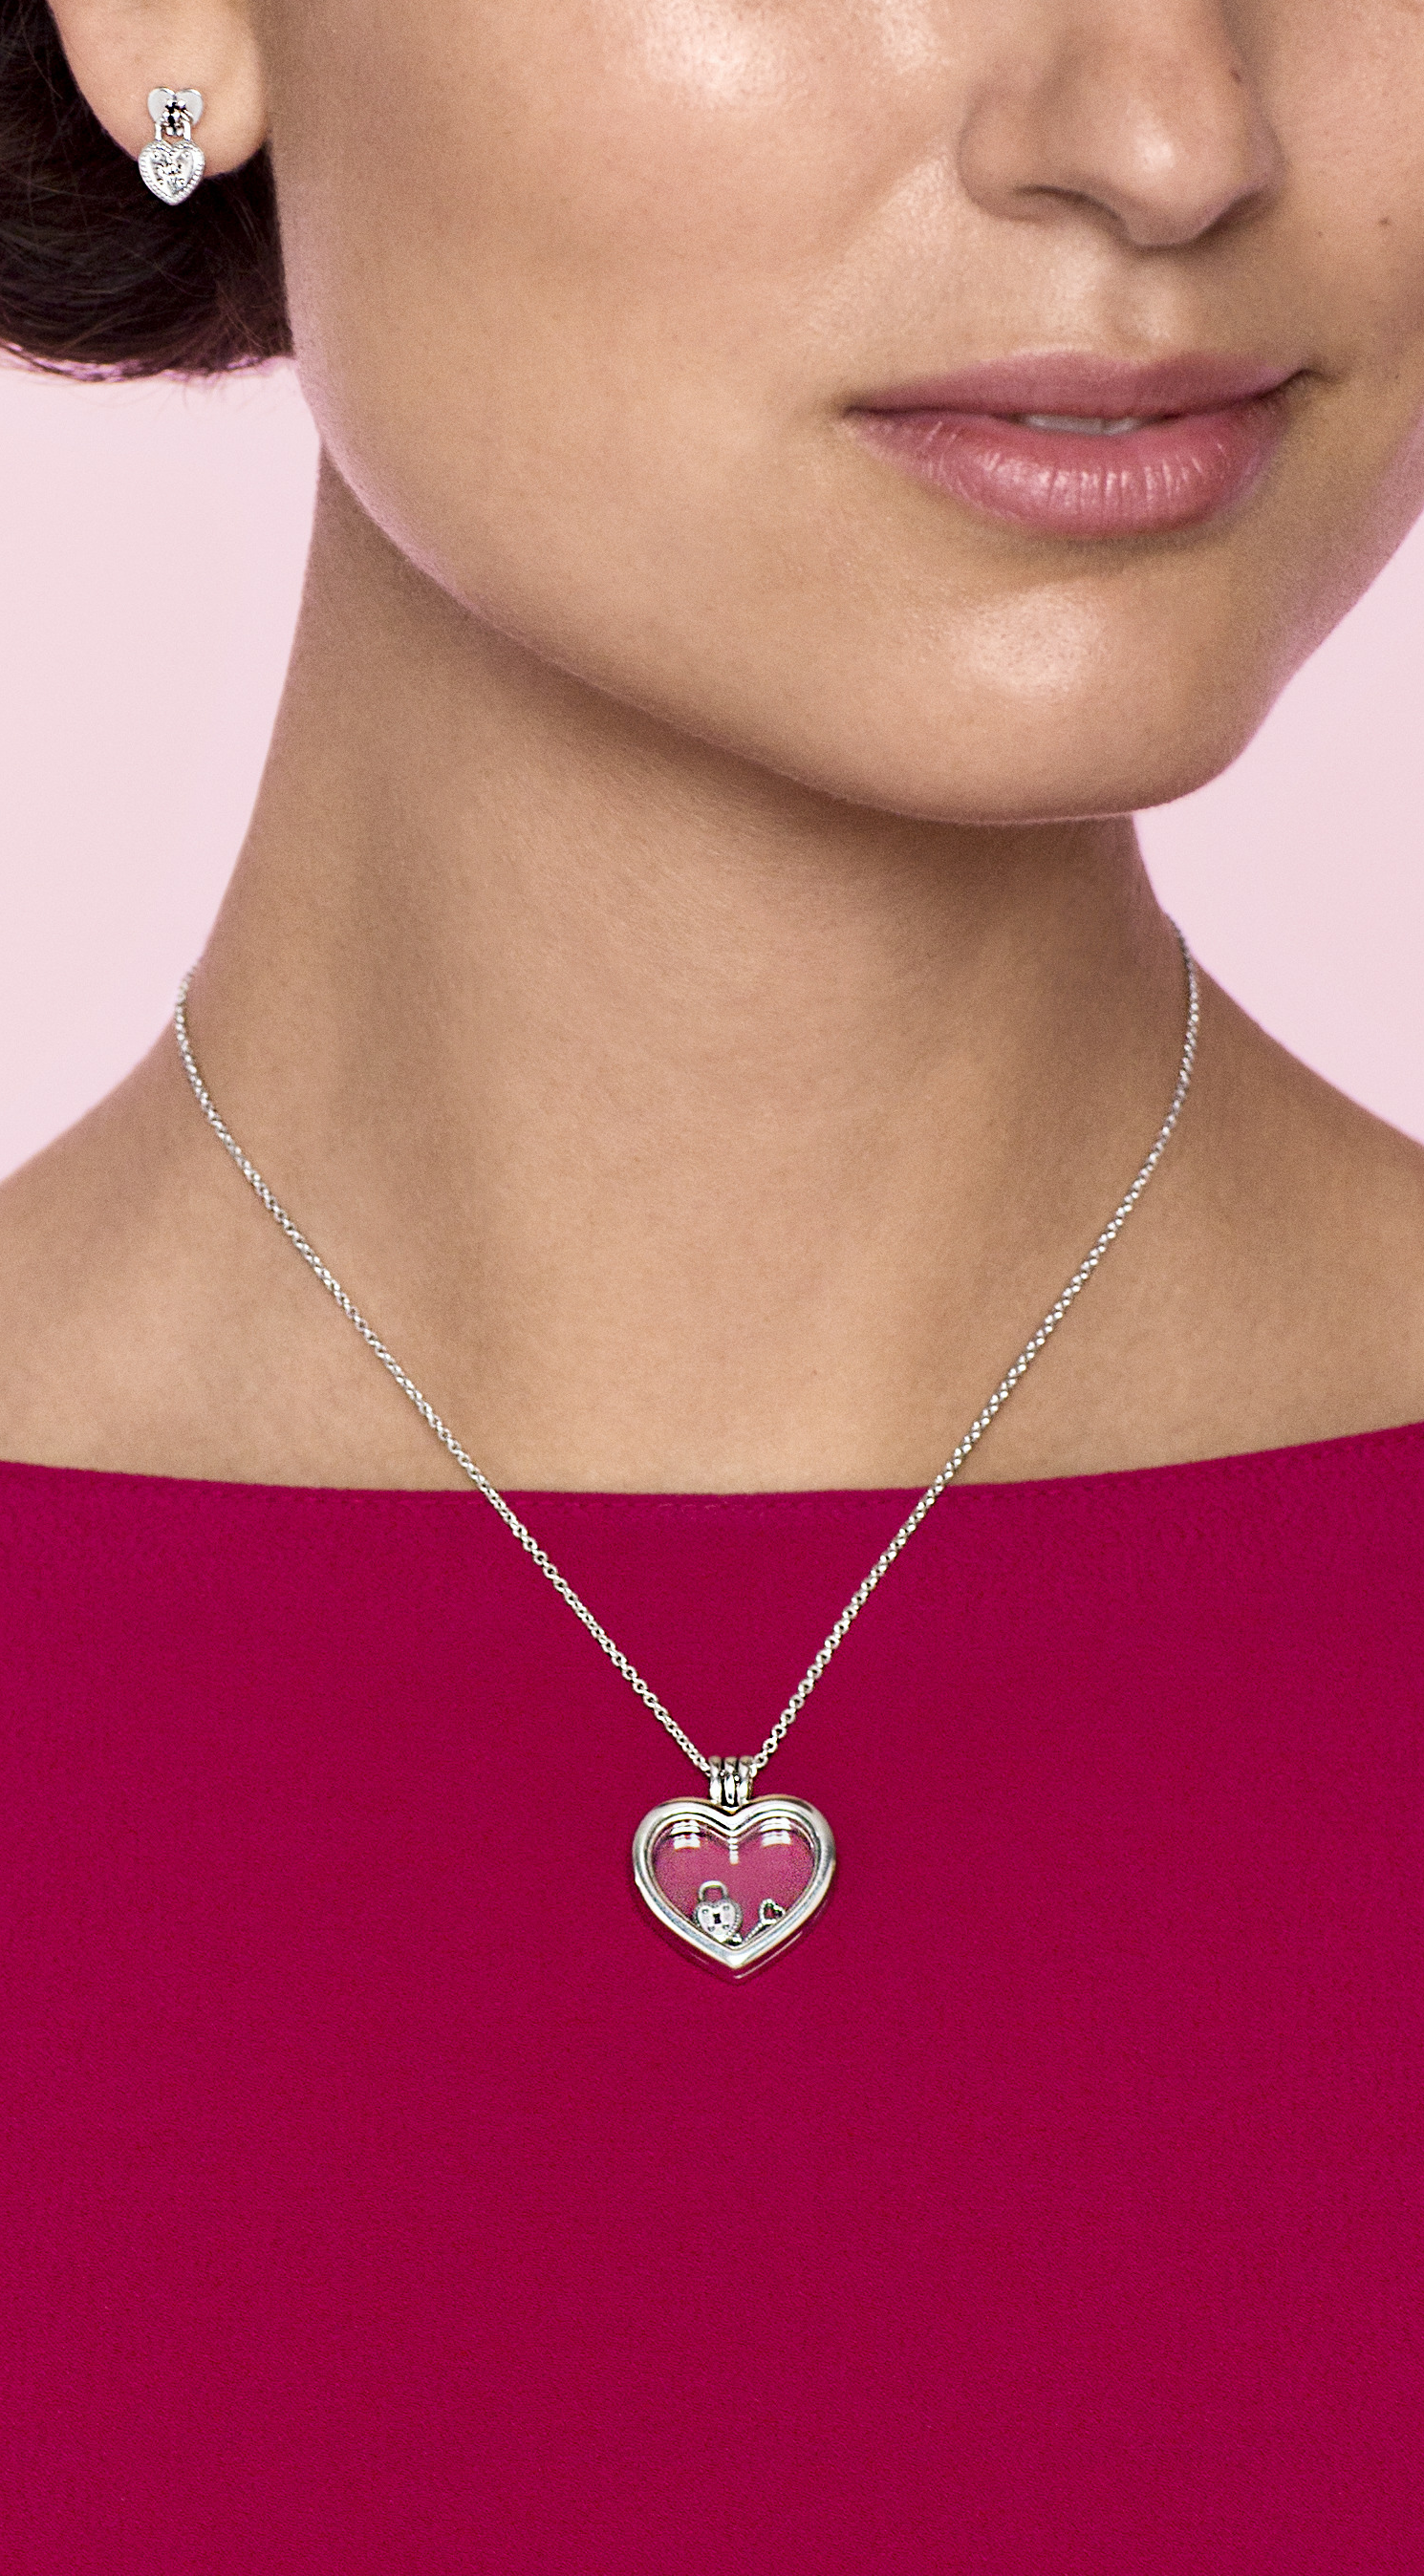 901de739e Lock your love in the PANDORA sterling silver heart locket - perfect for  Valentine's Day.